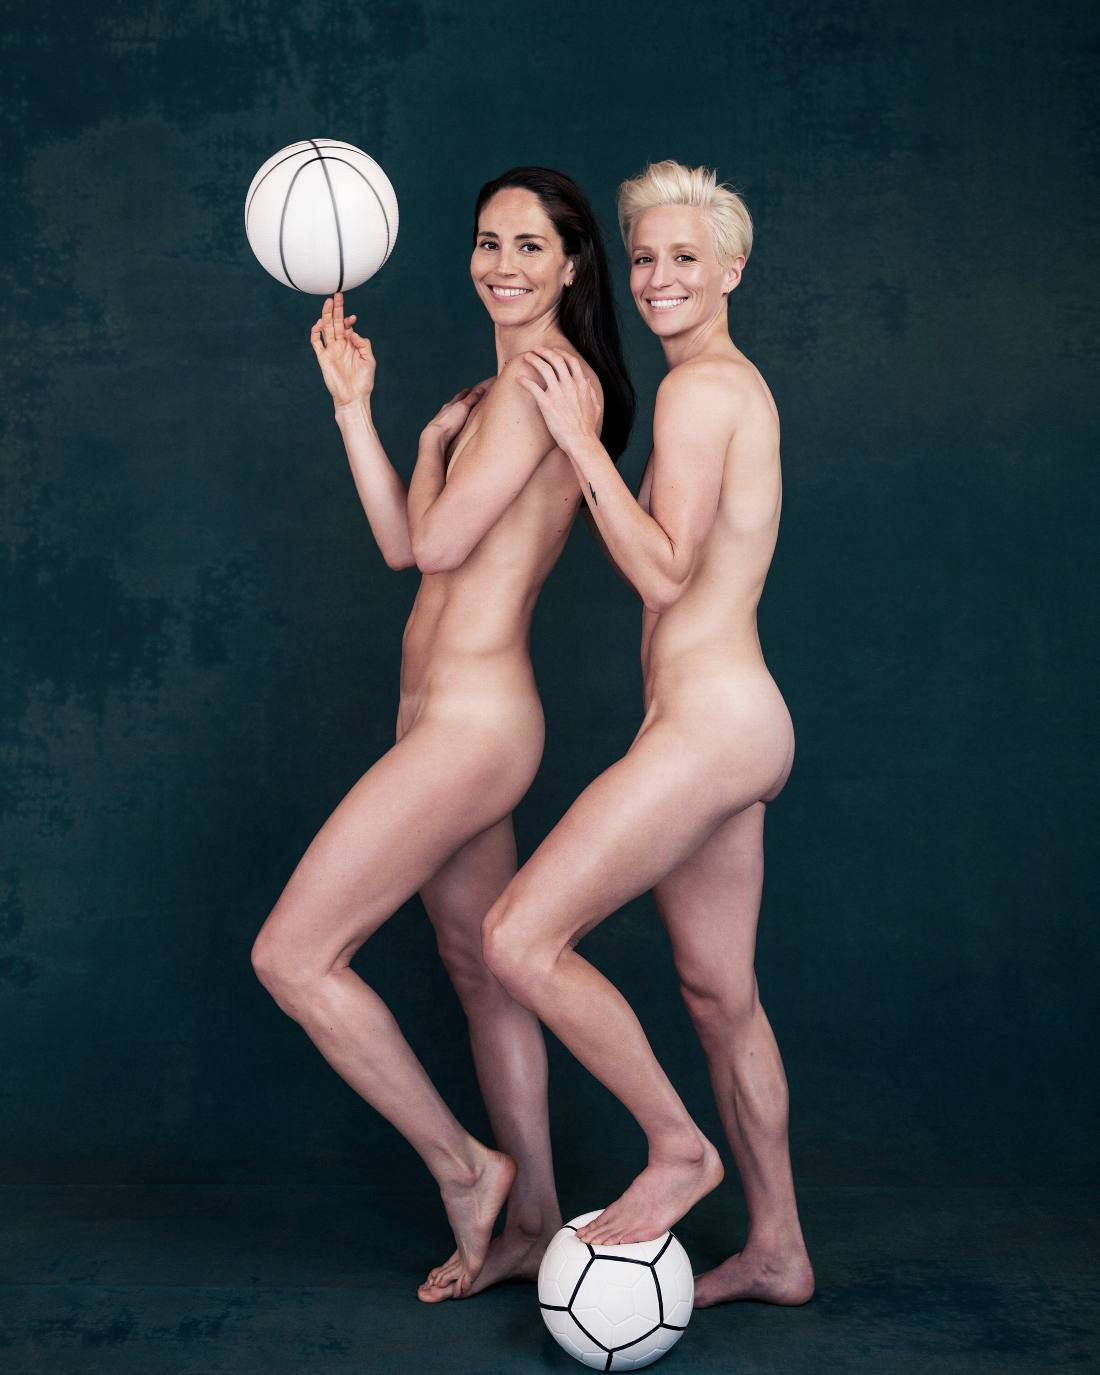 American High School Naked lgbt athletes among the naked sports stars in espn's 2019